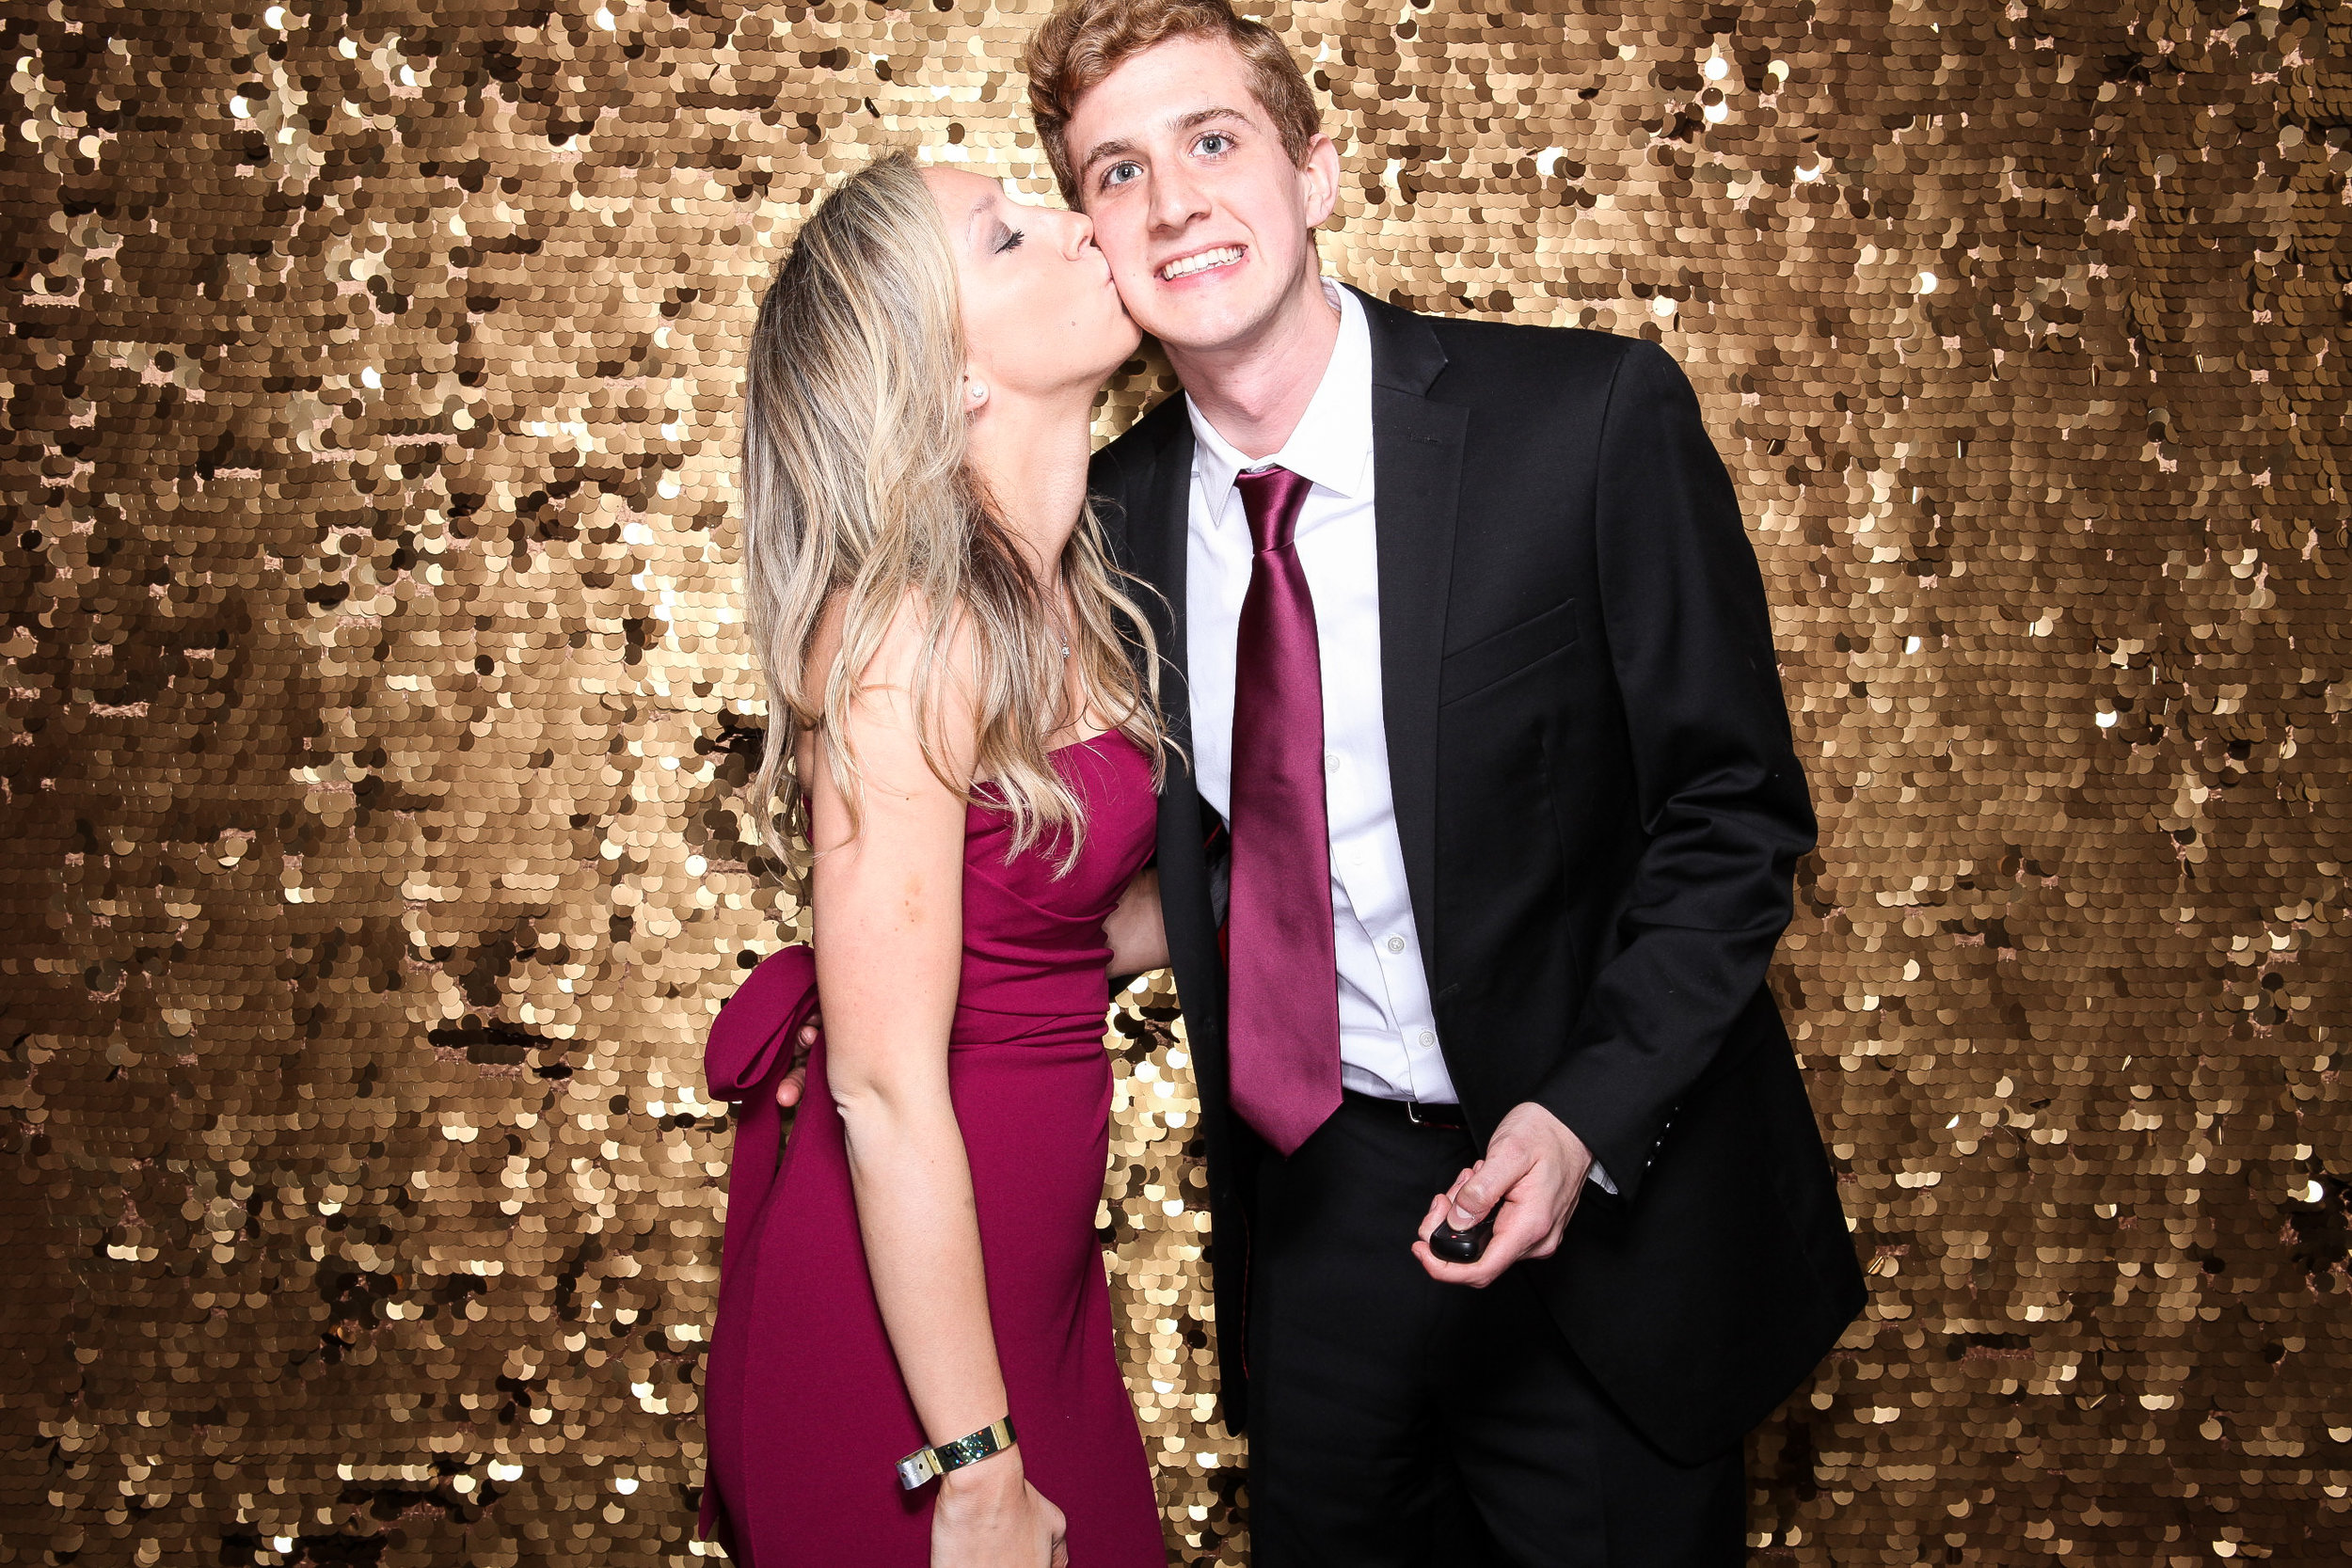 20190503_Adelphi_Senior_Formal-033.jpg